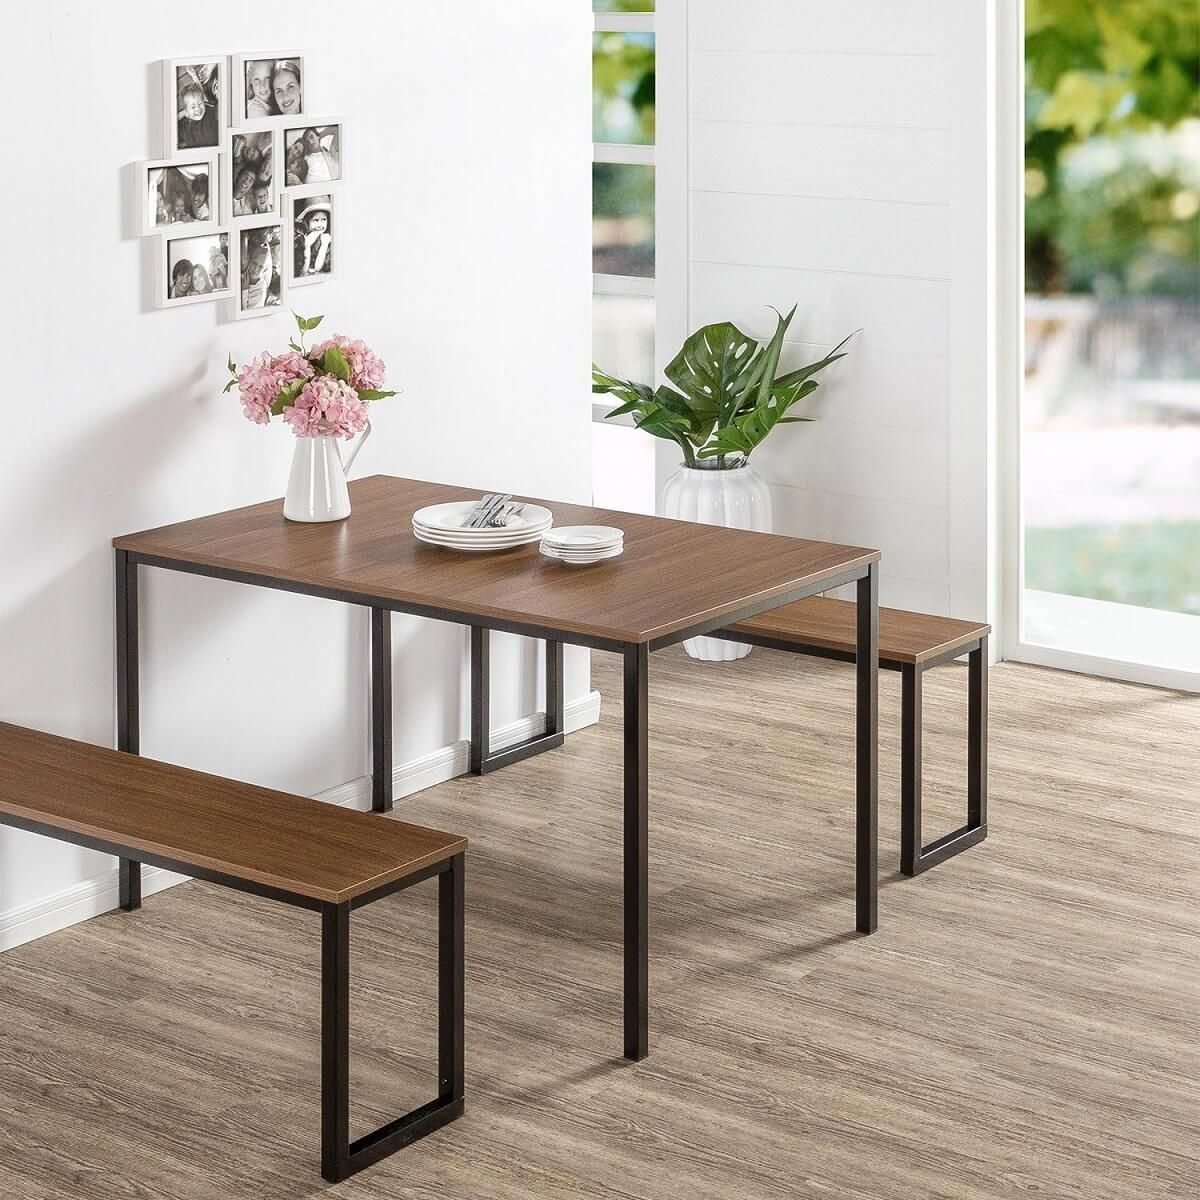 Small Table With Hideaway Benches Modern Dining Room Set Dining